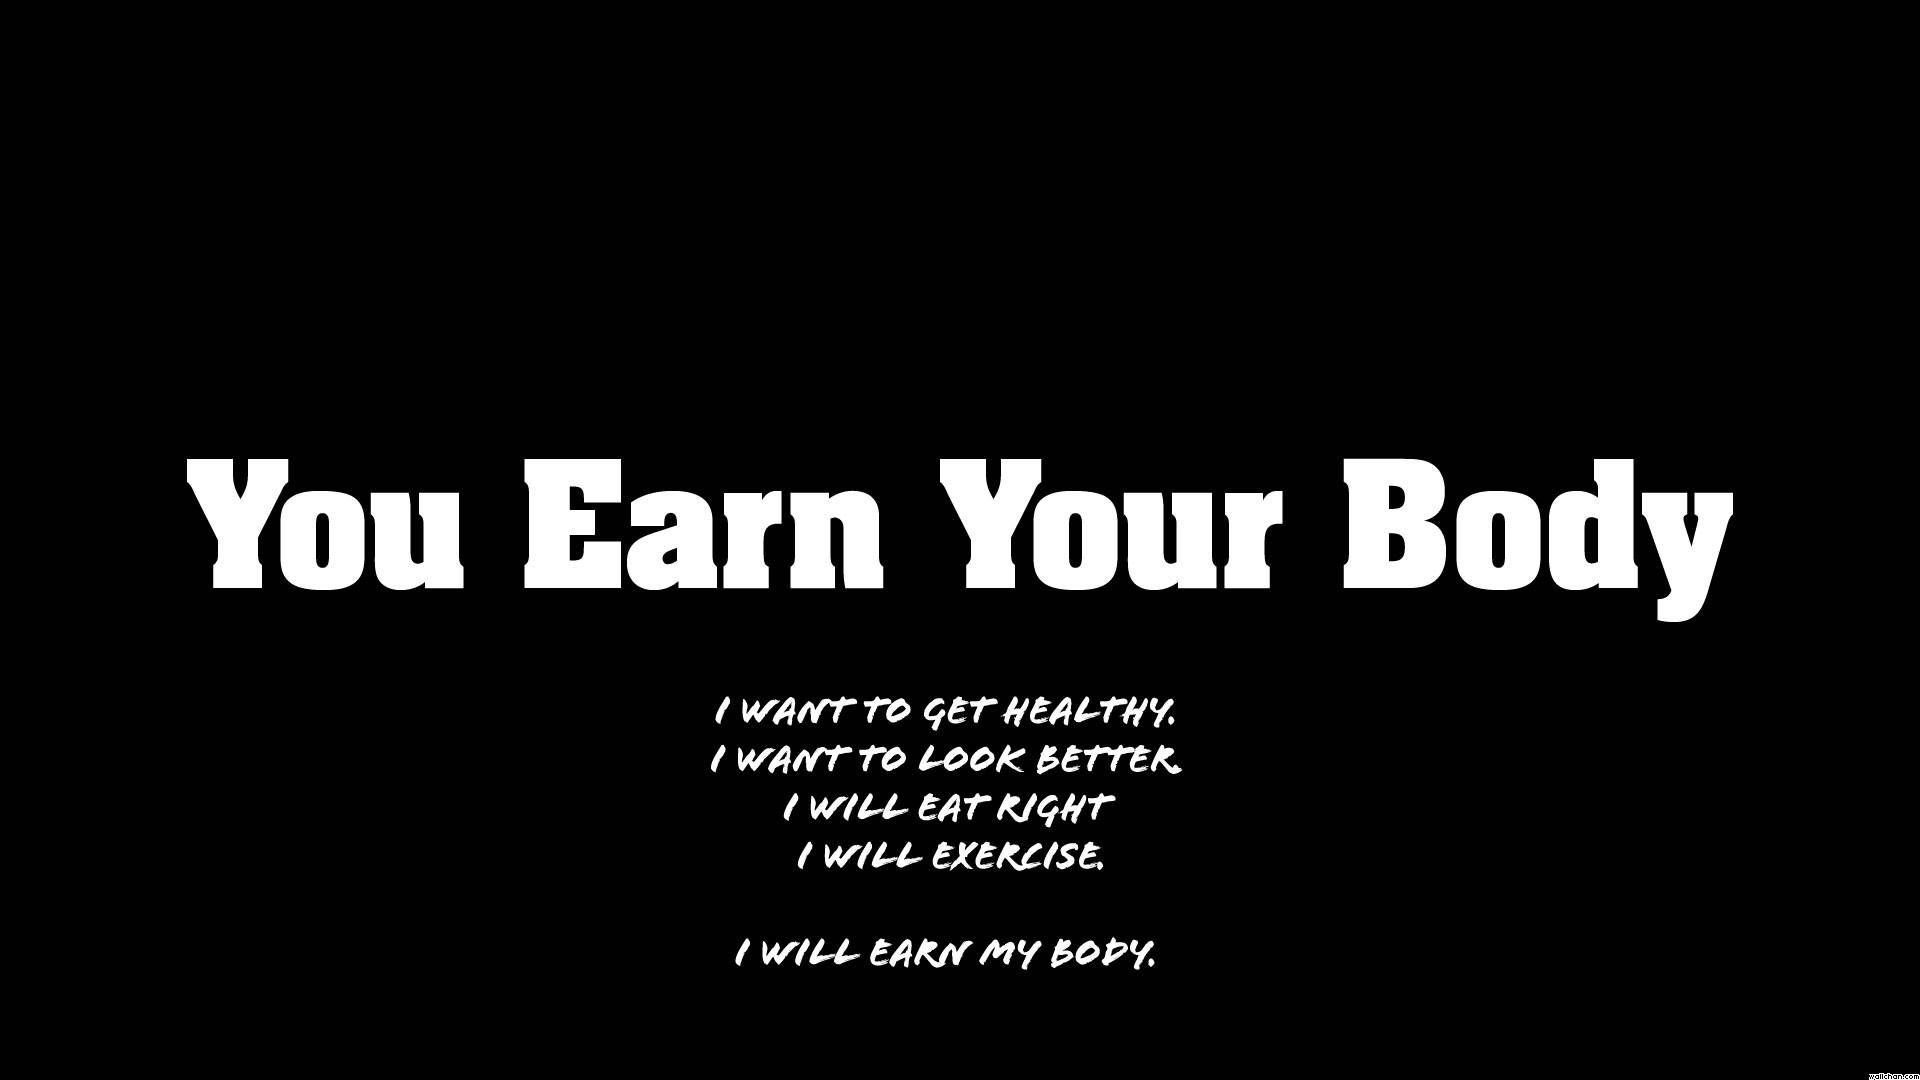 Workout quote #1